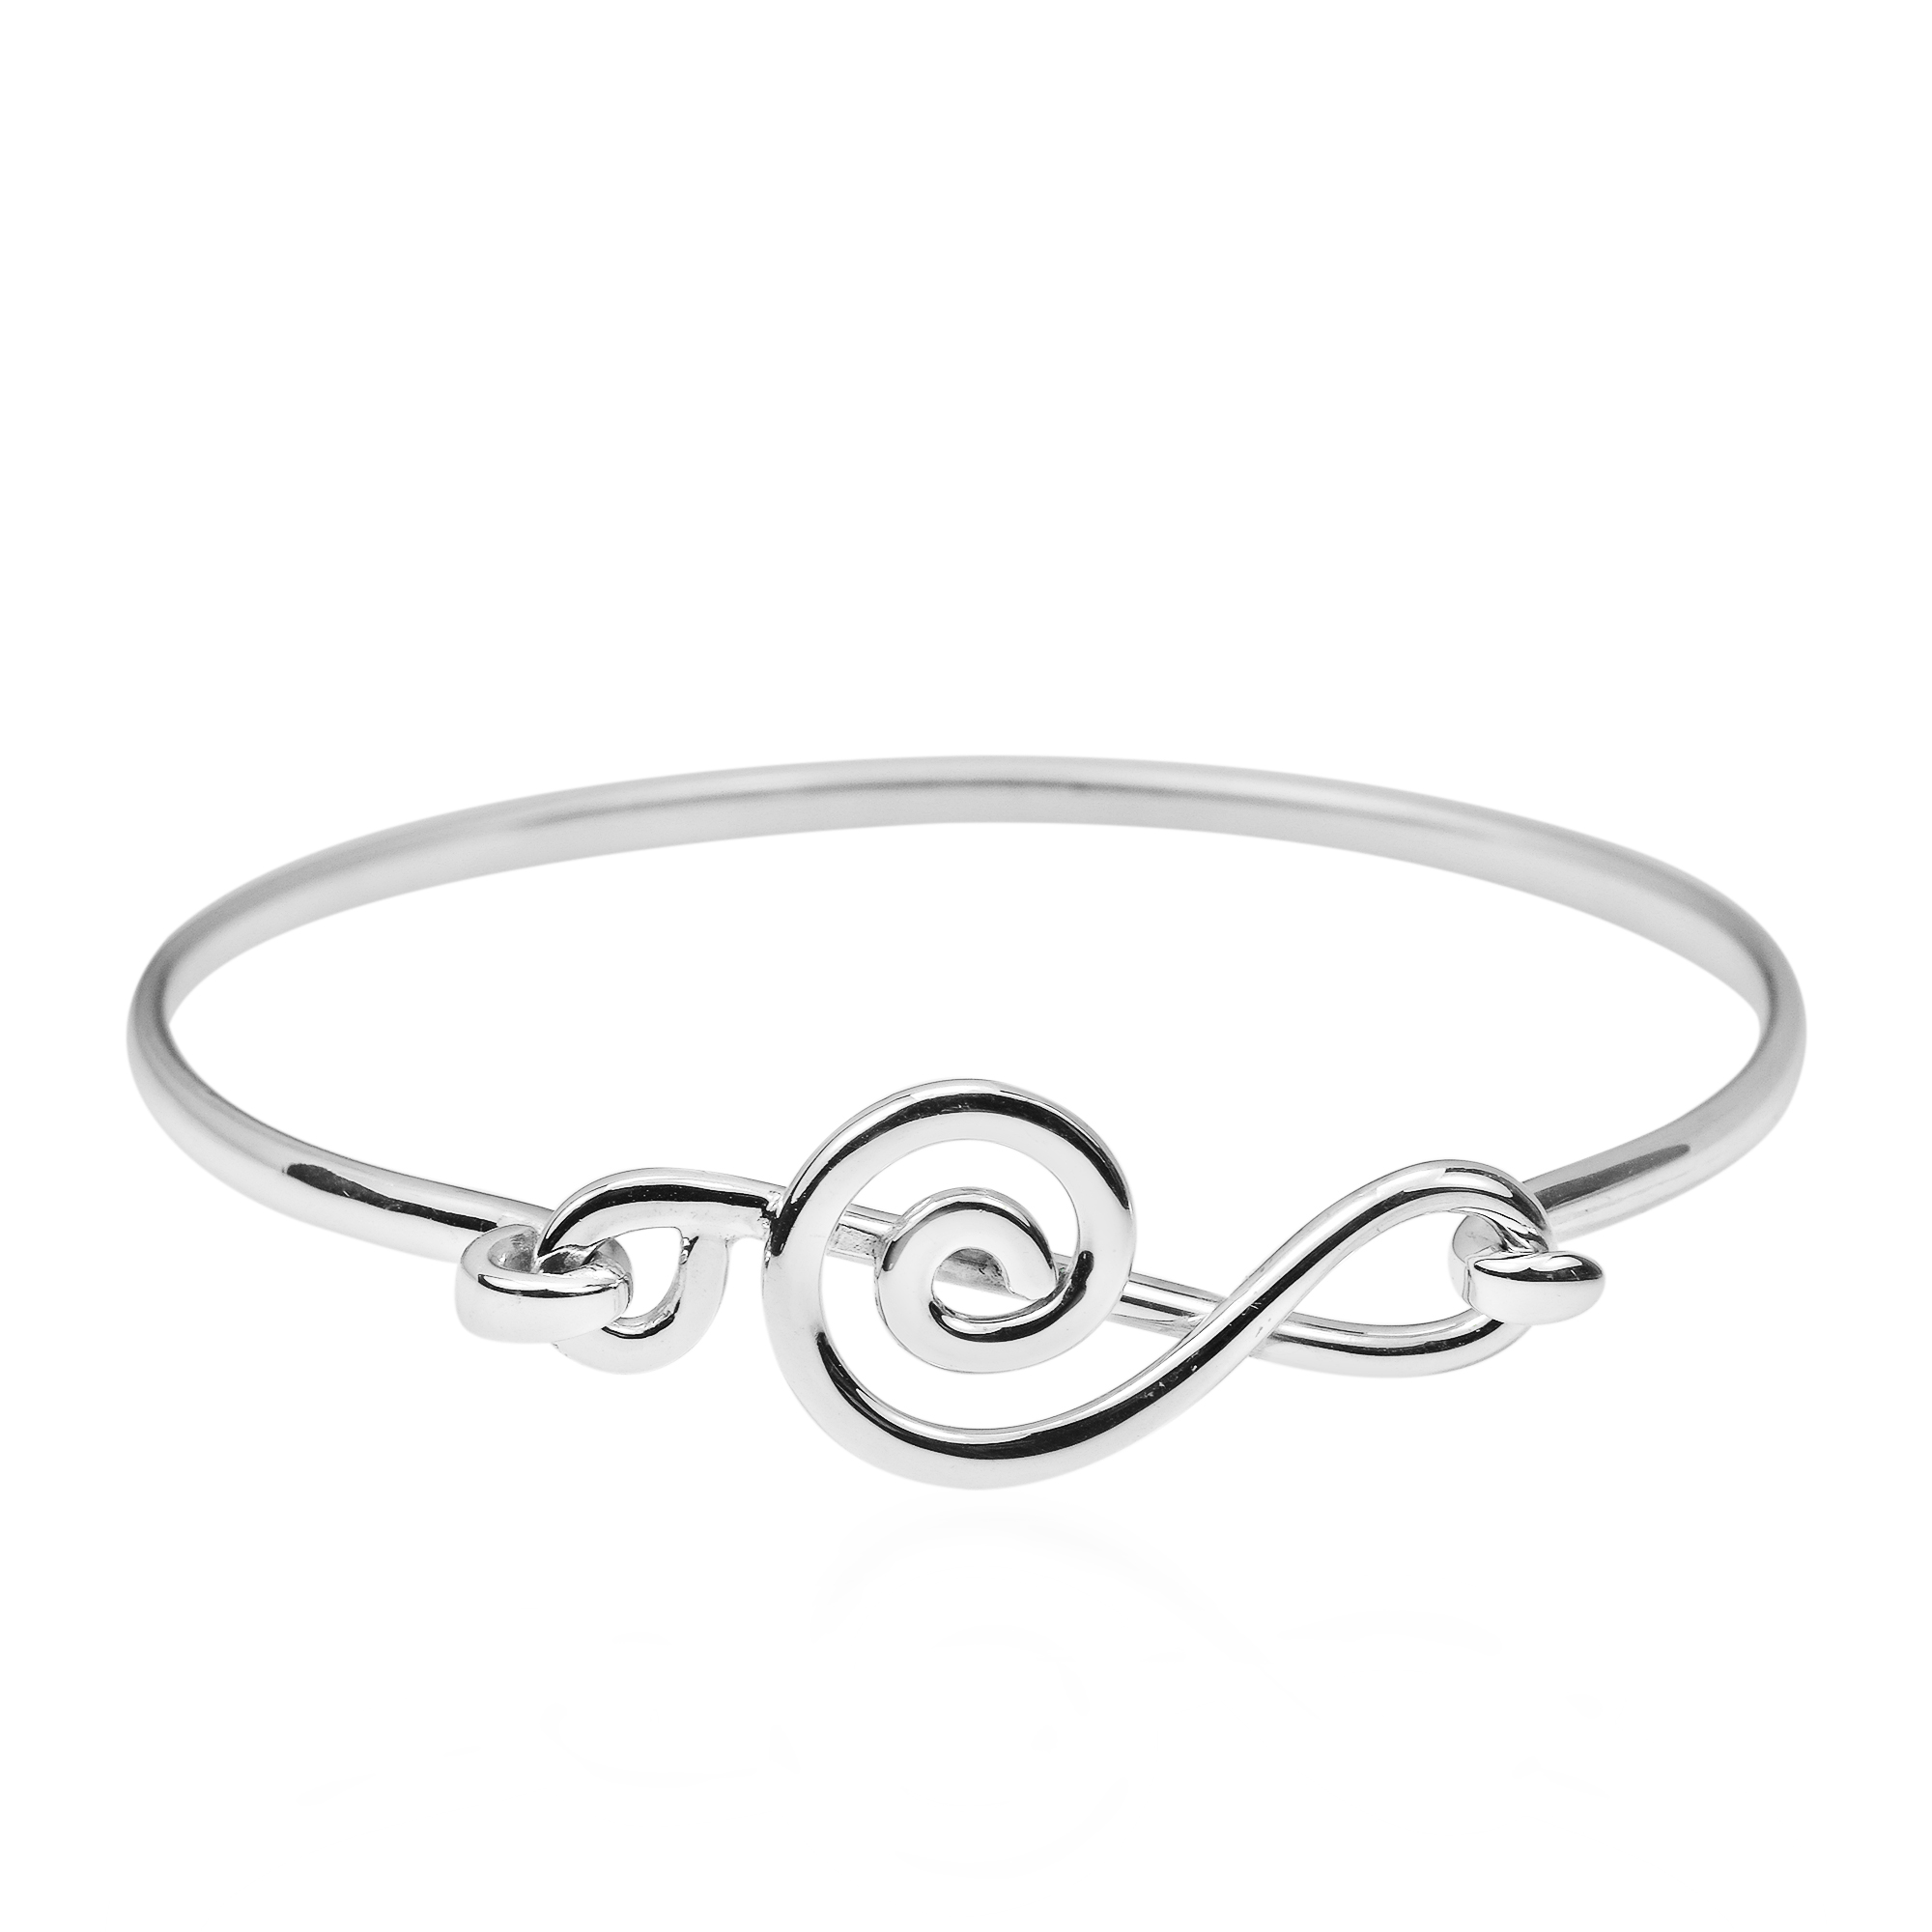 base sterling plain bangles womens plate bangle silver mm silverly stacking thin products cuff bracelet smooth bracelets gypsy simple